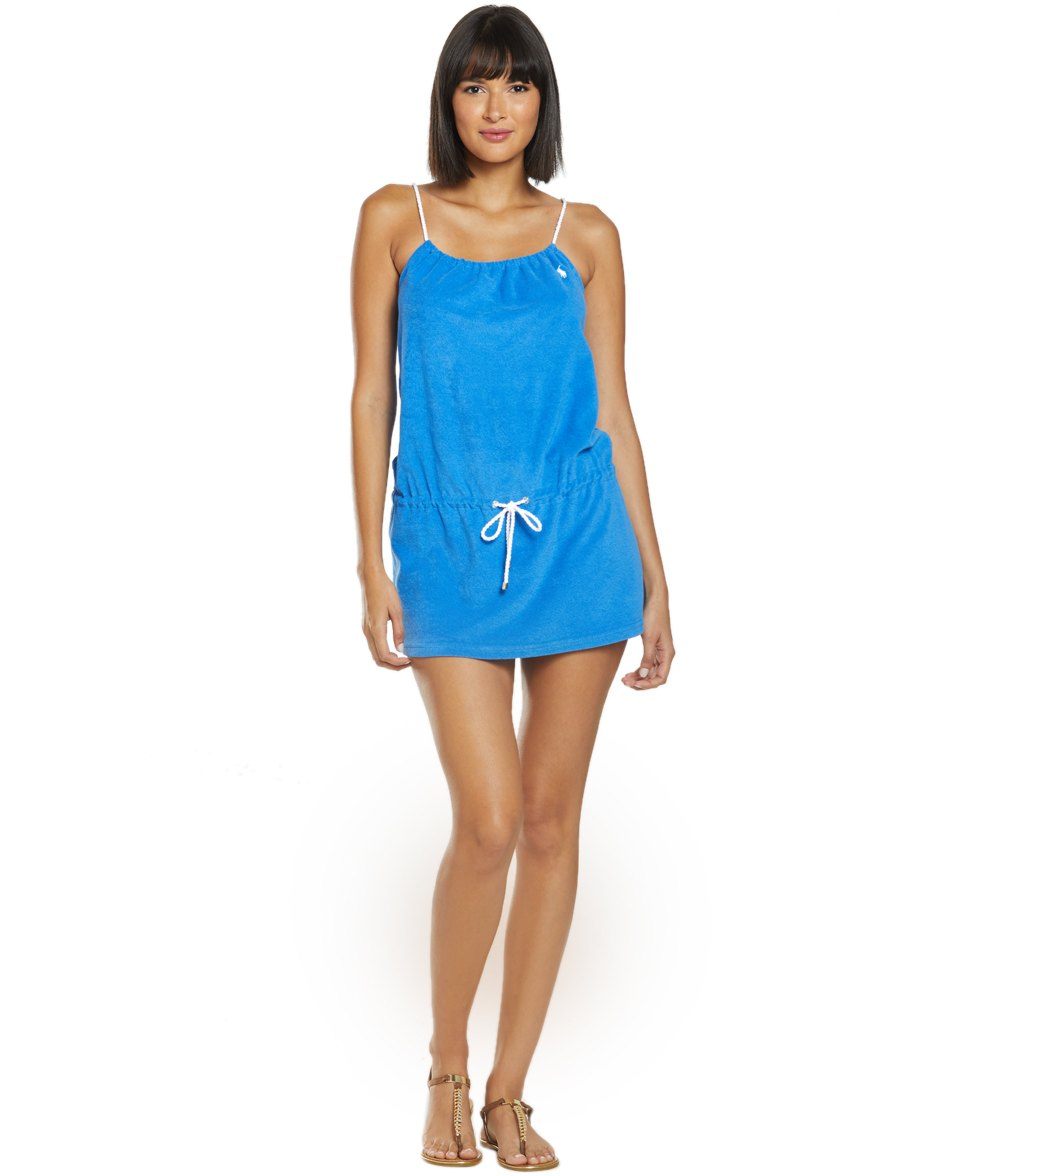 8dab99c55de Polo Ralph Lauren Iconic Terry Cover Up Rope Dress at SwimOutlet.com ...